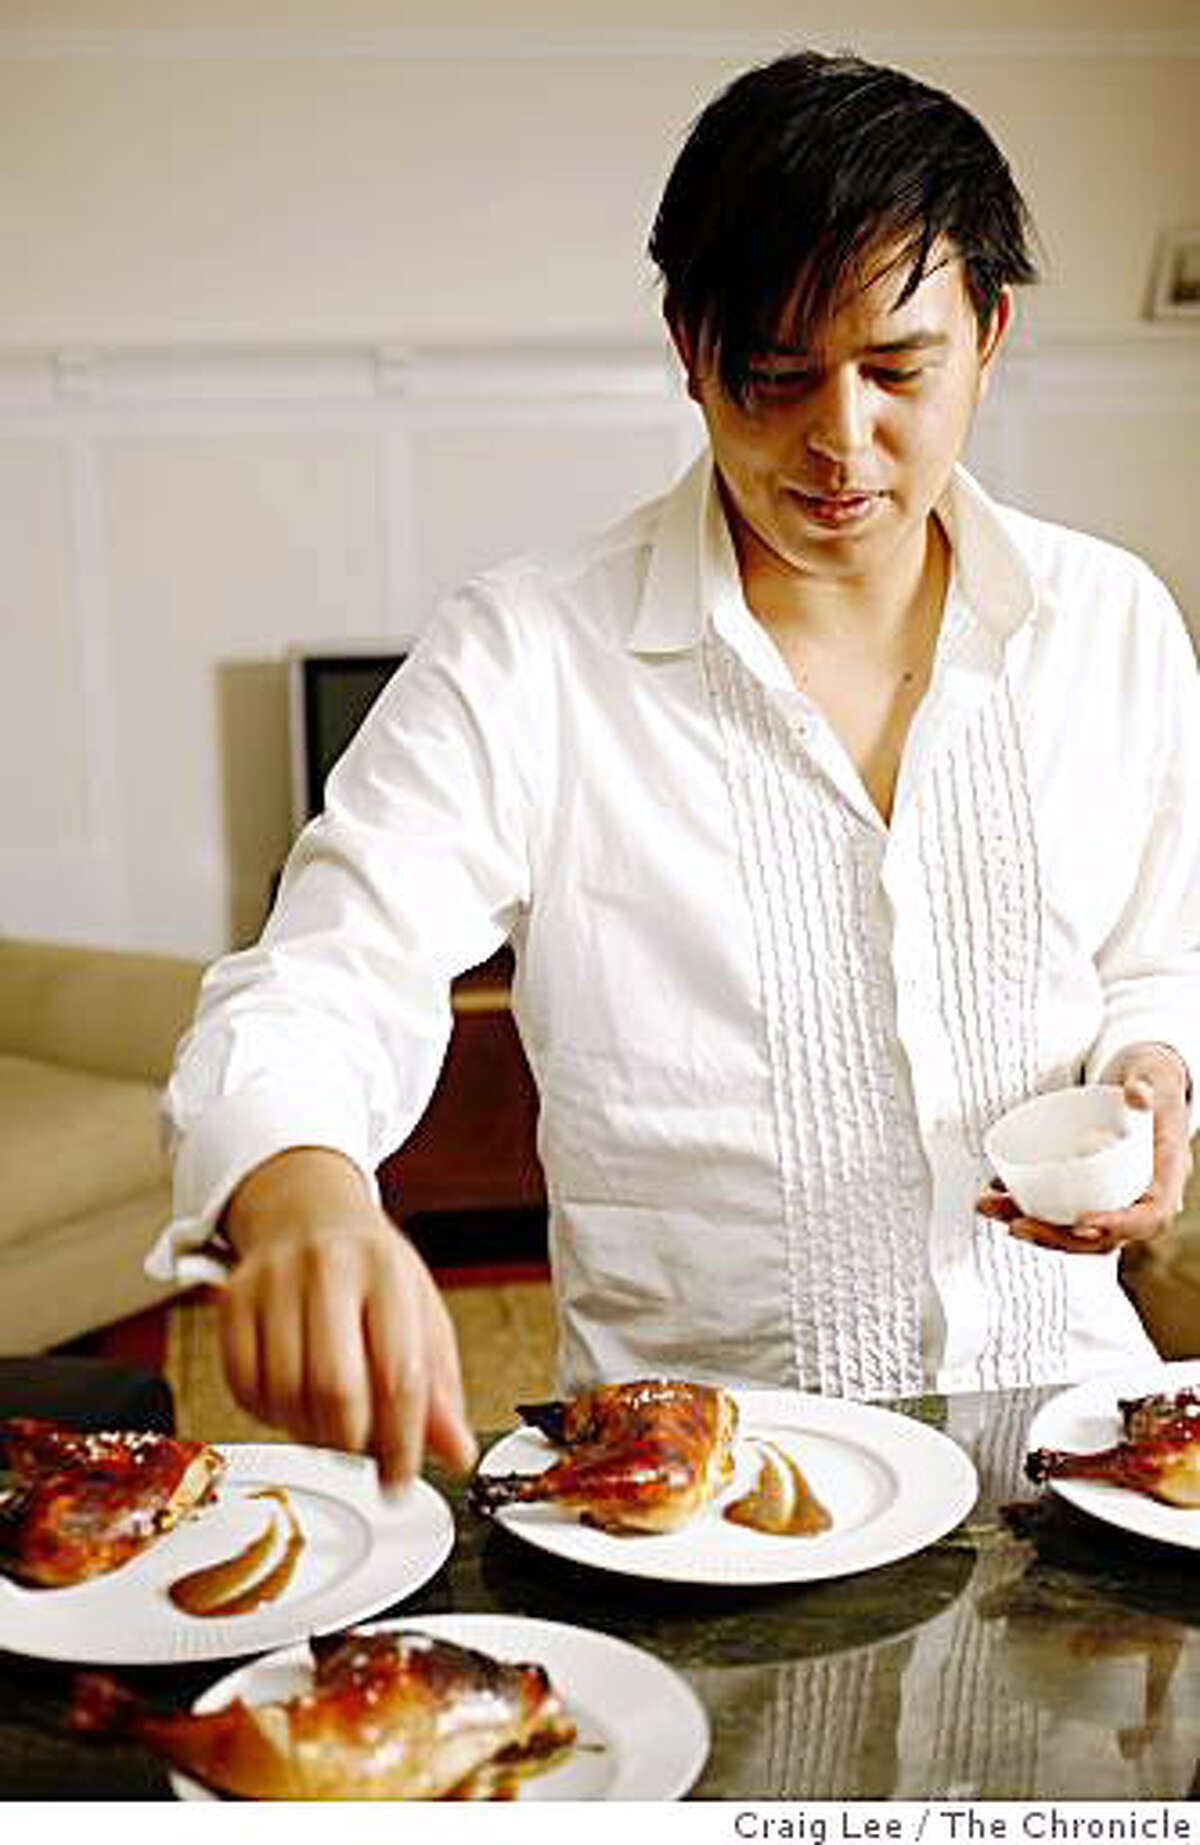 Drey Roxas, chef at Palencia restaurant, preparing a Filipino dish, Lechon na manok sa hurno (baked chicken) at his home in San Francisco, Calif., on August 11, 2008. He is placing salt on the finished dish.